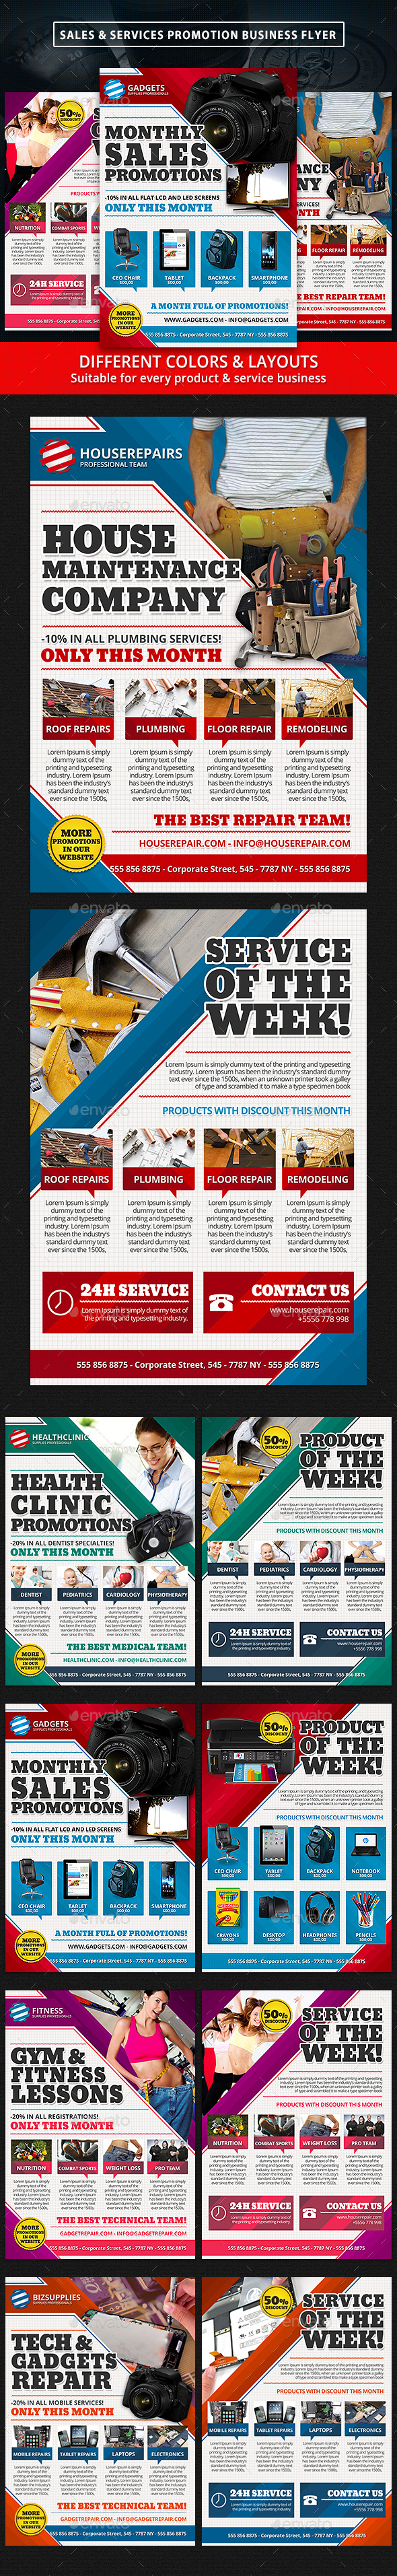 Product Sales & Services Promotion Business Flyer - Commerce Flyers